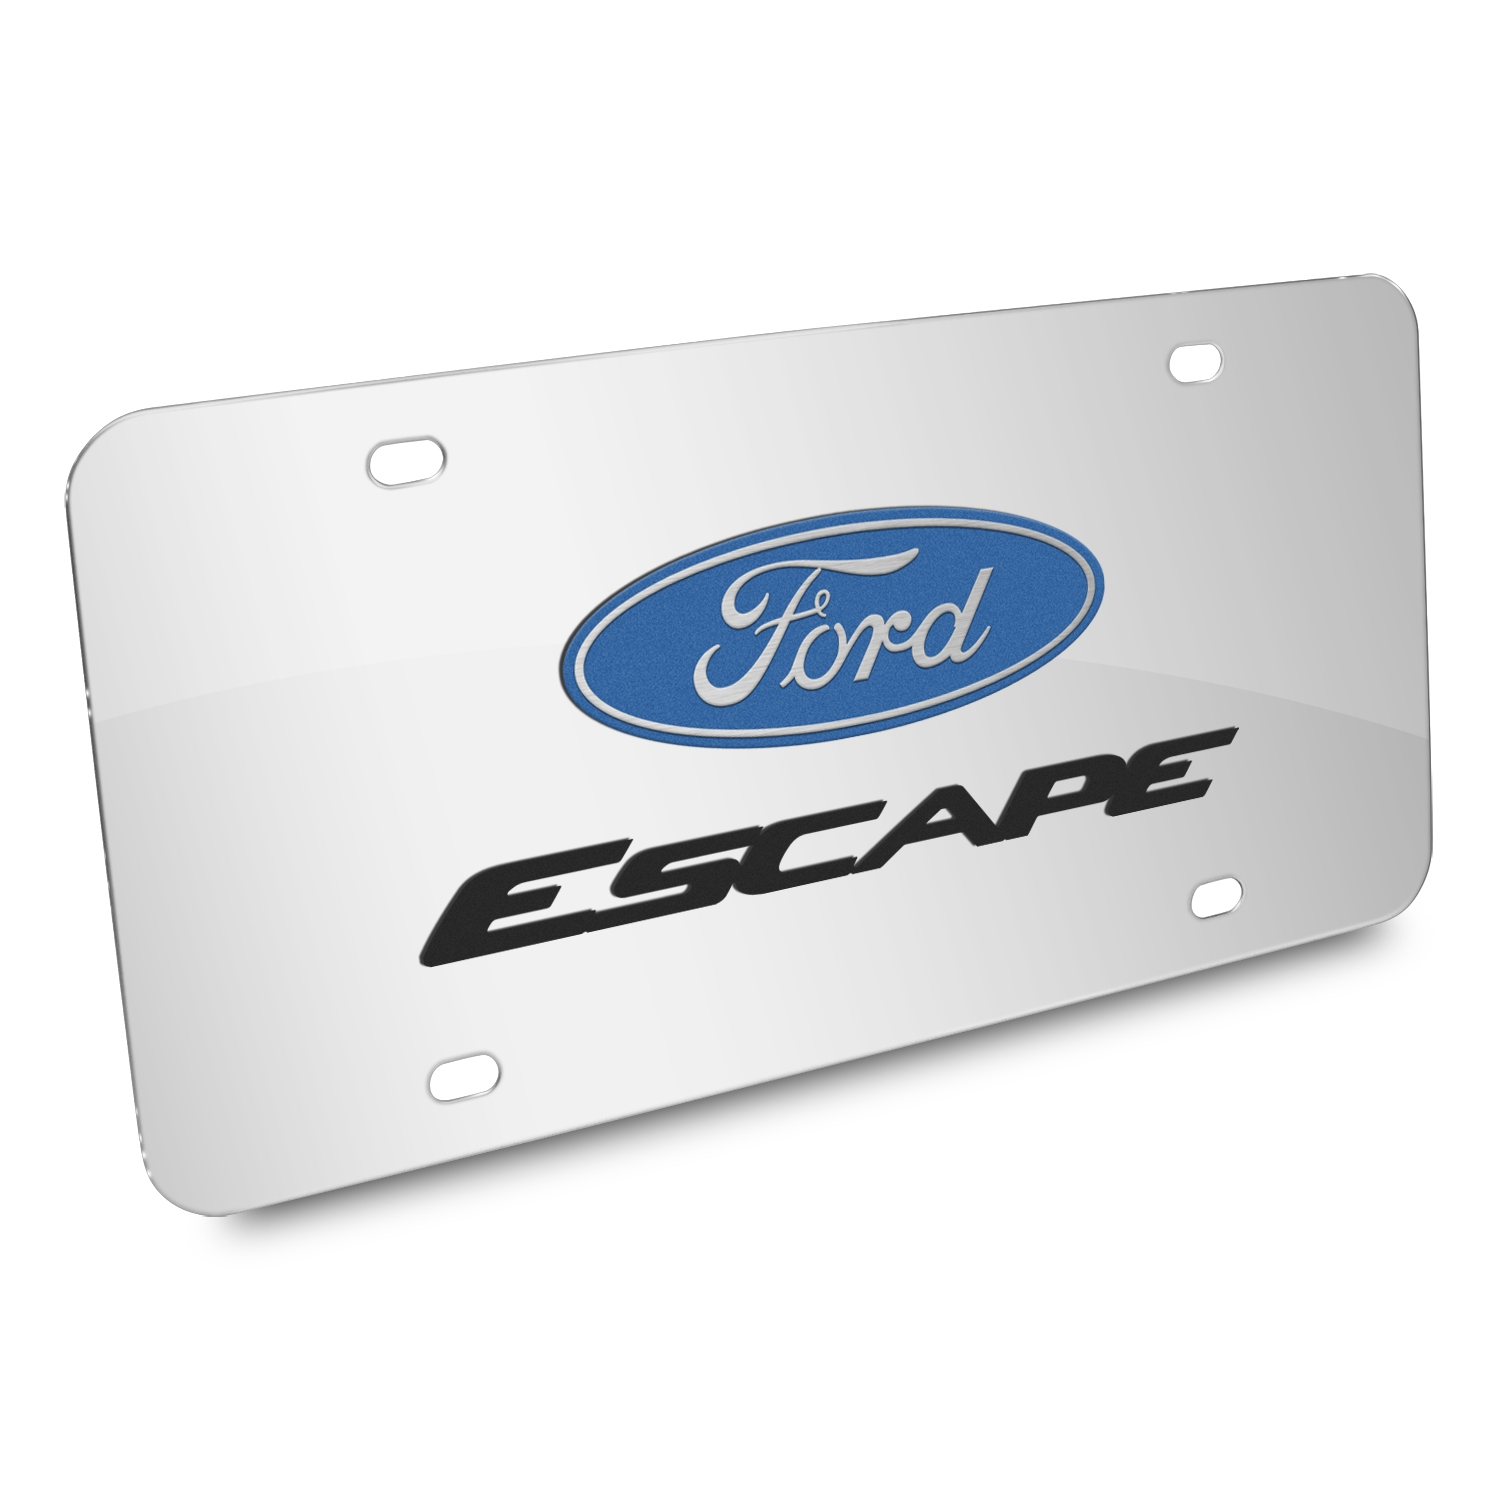 Ford Escape 3D Dual Logo Mirror Chrome Stainless Steel License Plate